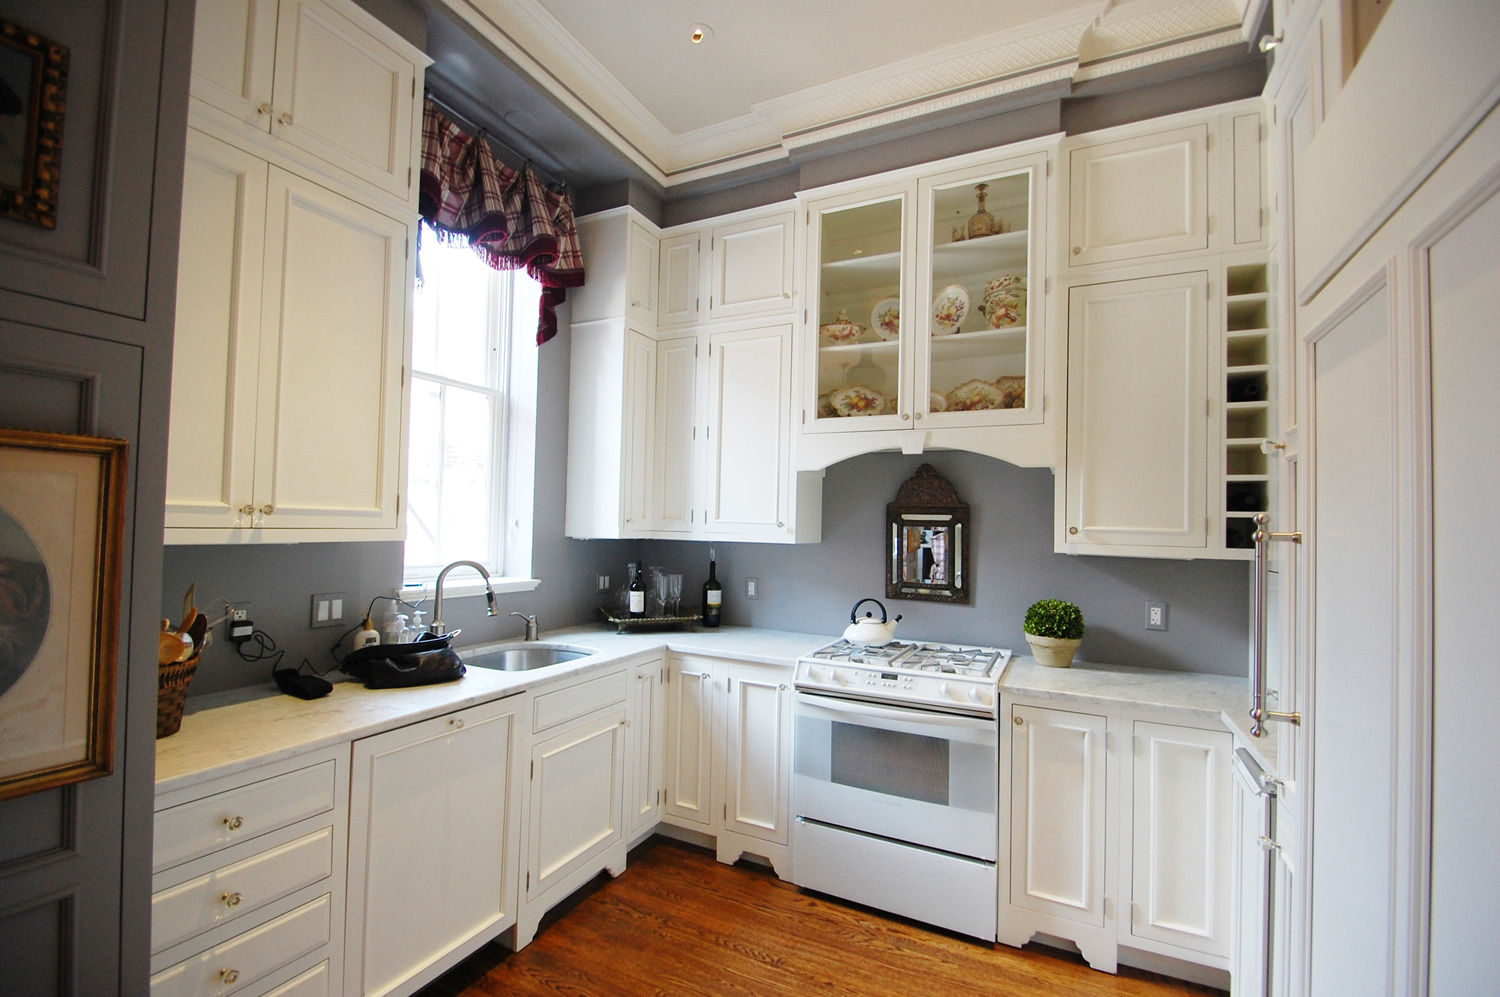 Classic White Cabinets and Granite Countertop beside Grey Walls Kitchen in Traditional Kitchen